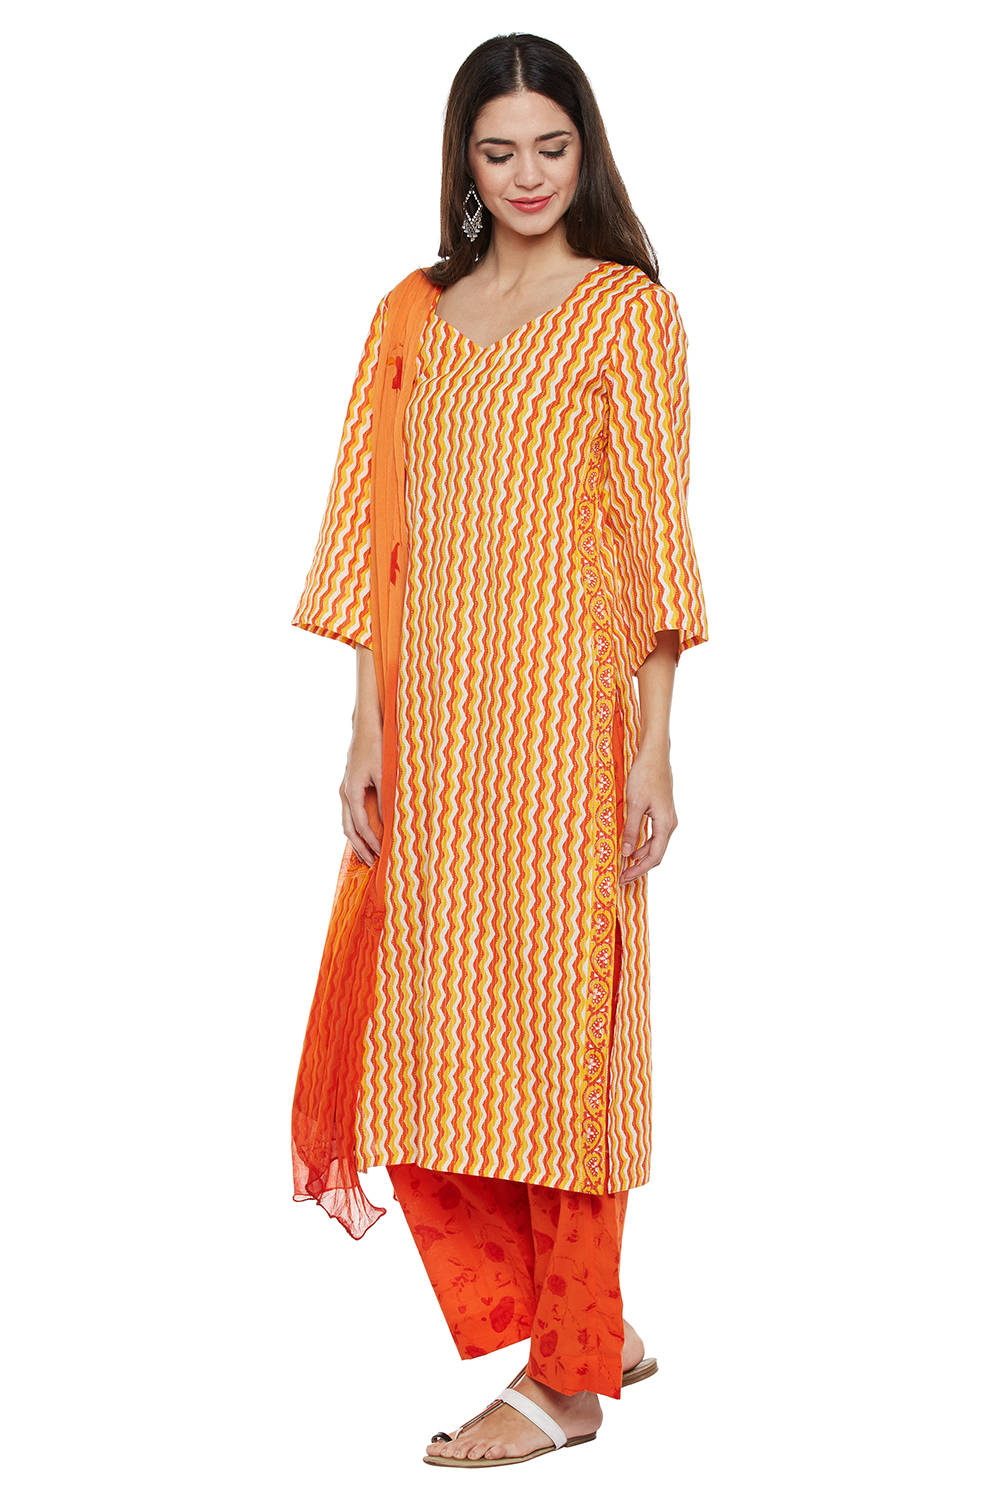 Cotton Block Printed Orange Dress